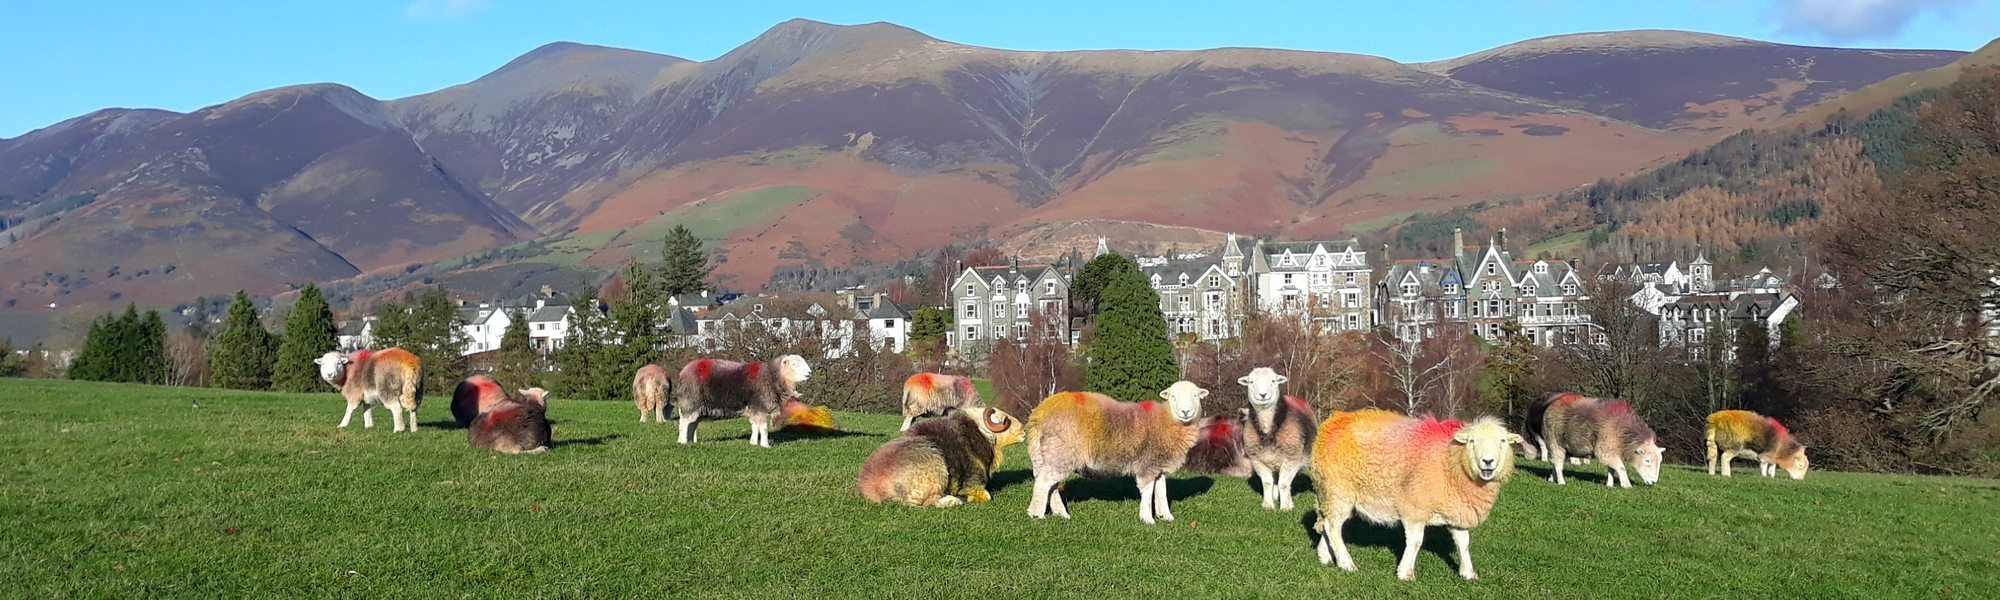 Keswick and Skiddaw. Photo by Pete Royall